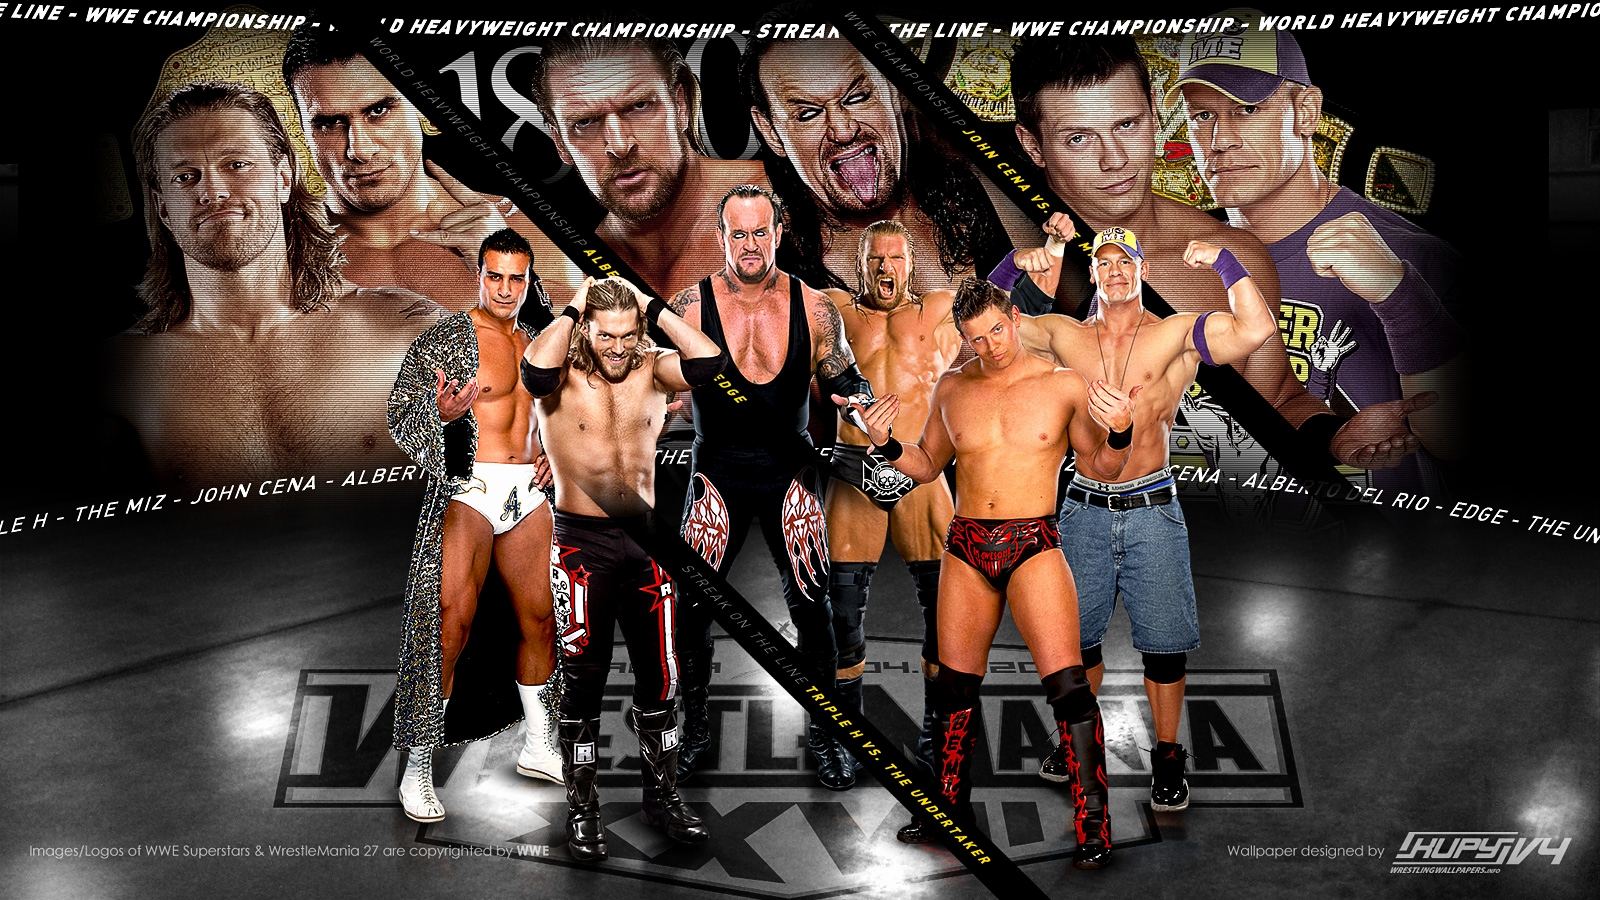 Wwe Wrestlers Wallpapers Luxury Free Wallpaper Dekstop Wwe Wrestlers 1600x900 Download Hd Wallpaper Wallpapertip